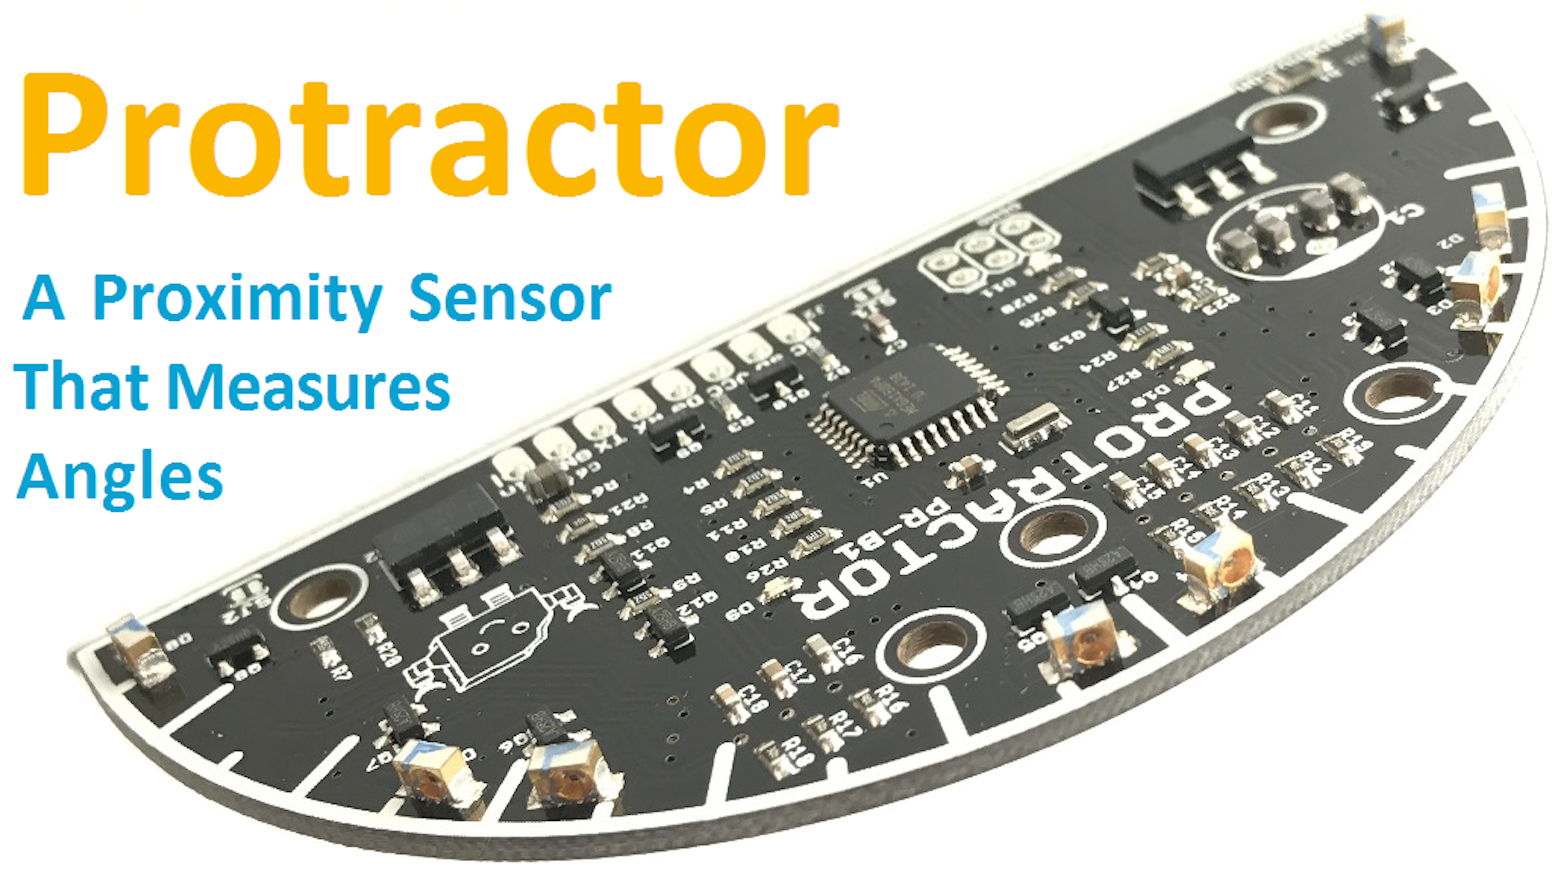 Protractor A Proximity Sensor That Measures Angles By William Moore How To Build An Infrared Distance Circuit Use Arduino For